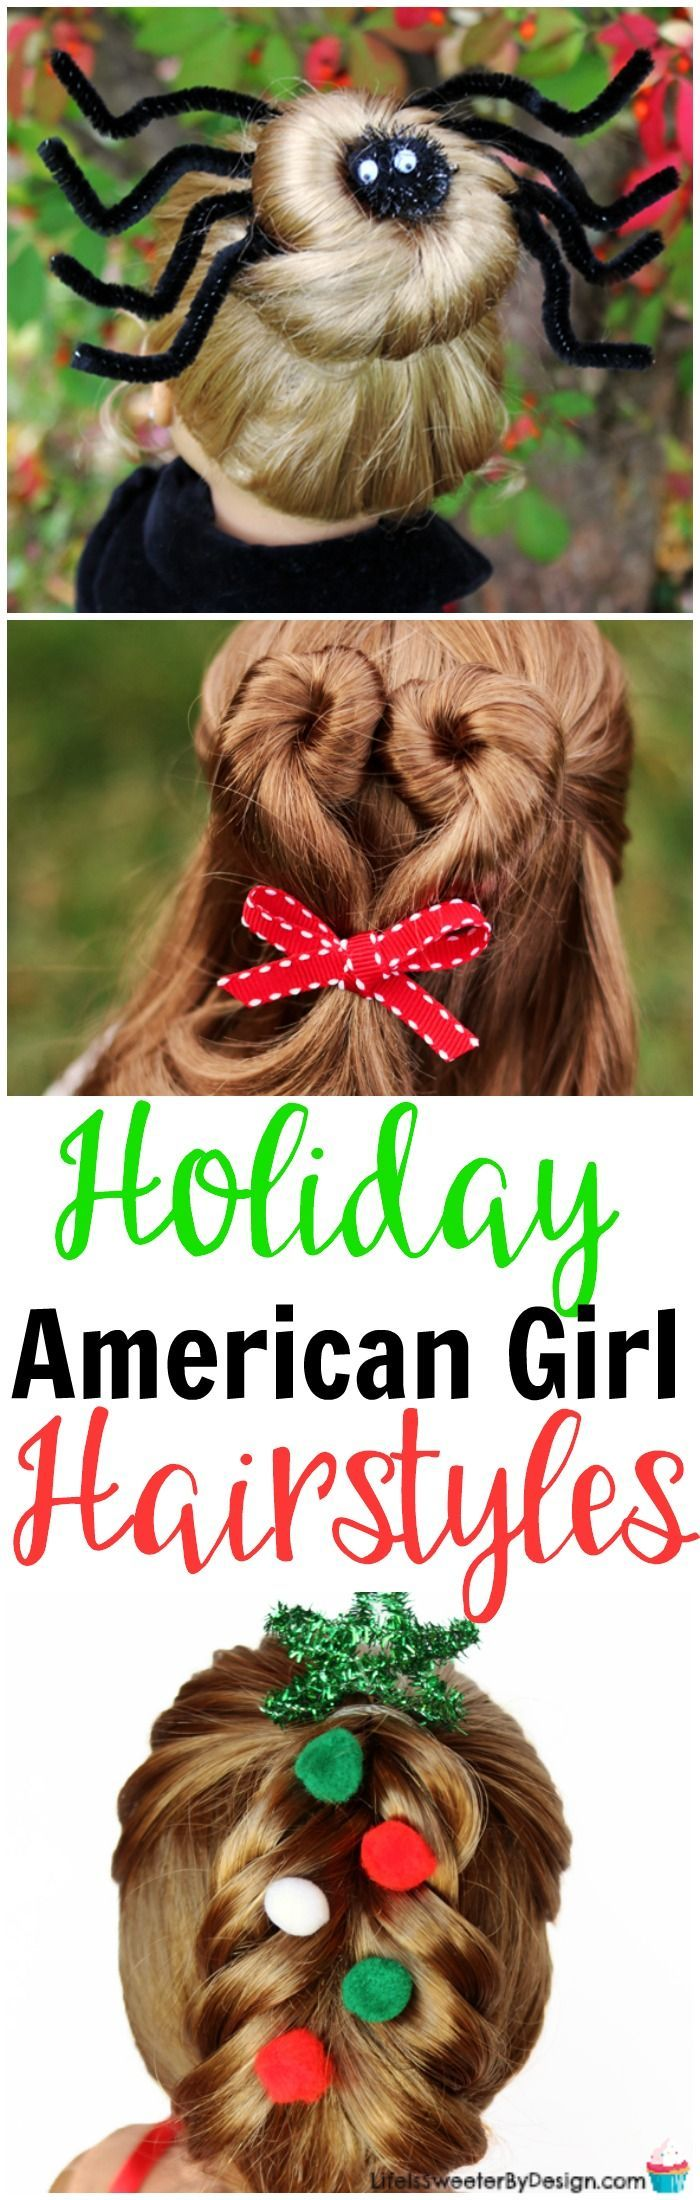 Holiday hairstyles for American Girl dolls are fun and festive. These easy doll hairstyles will make your 18 inch doll look adorable!